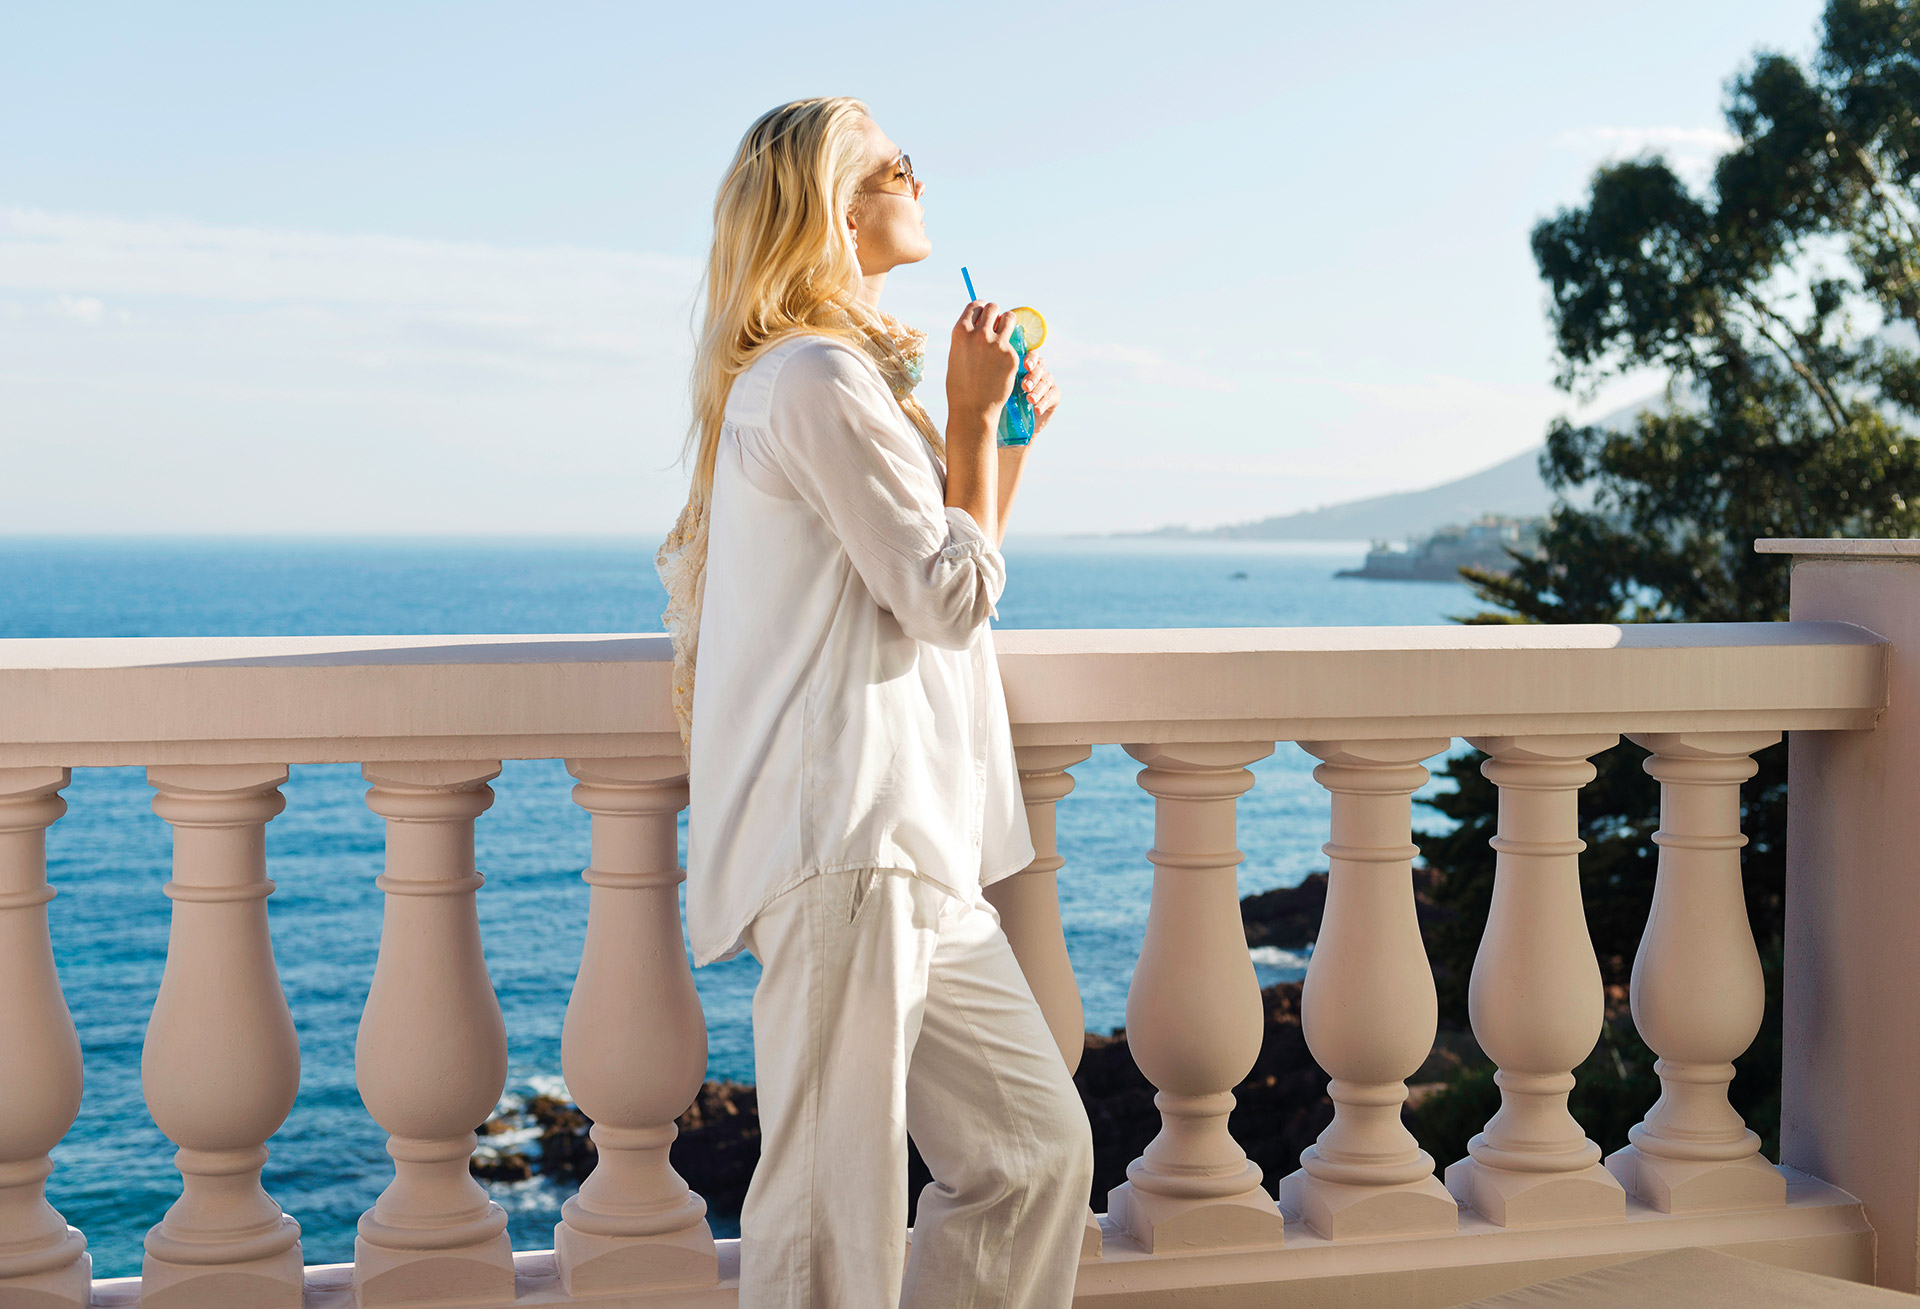 Miramar Beach Hôtel & Spa - Luxury hotel with a sea view French Riviera